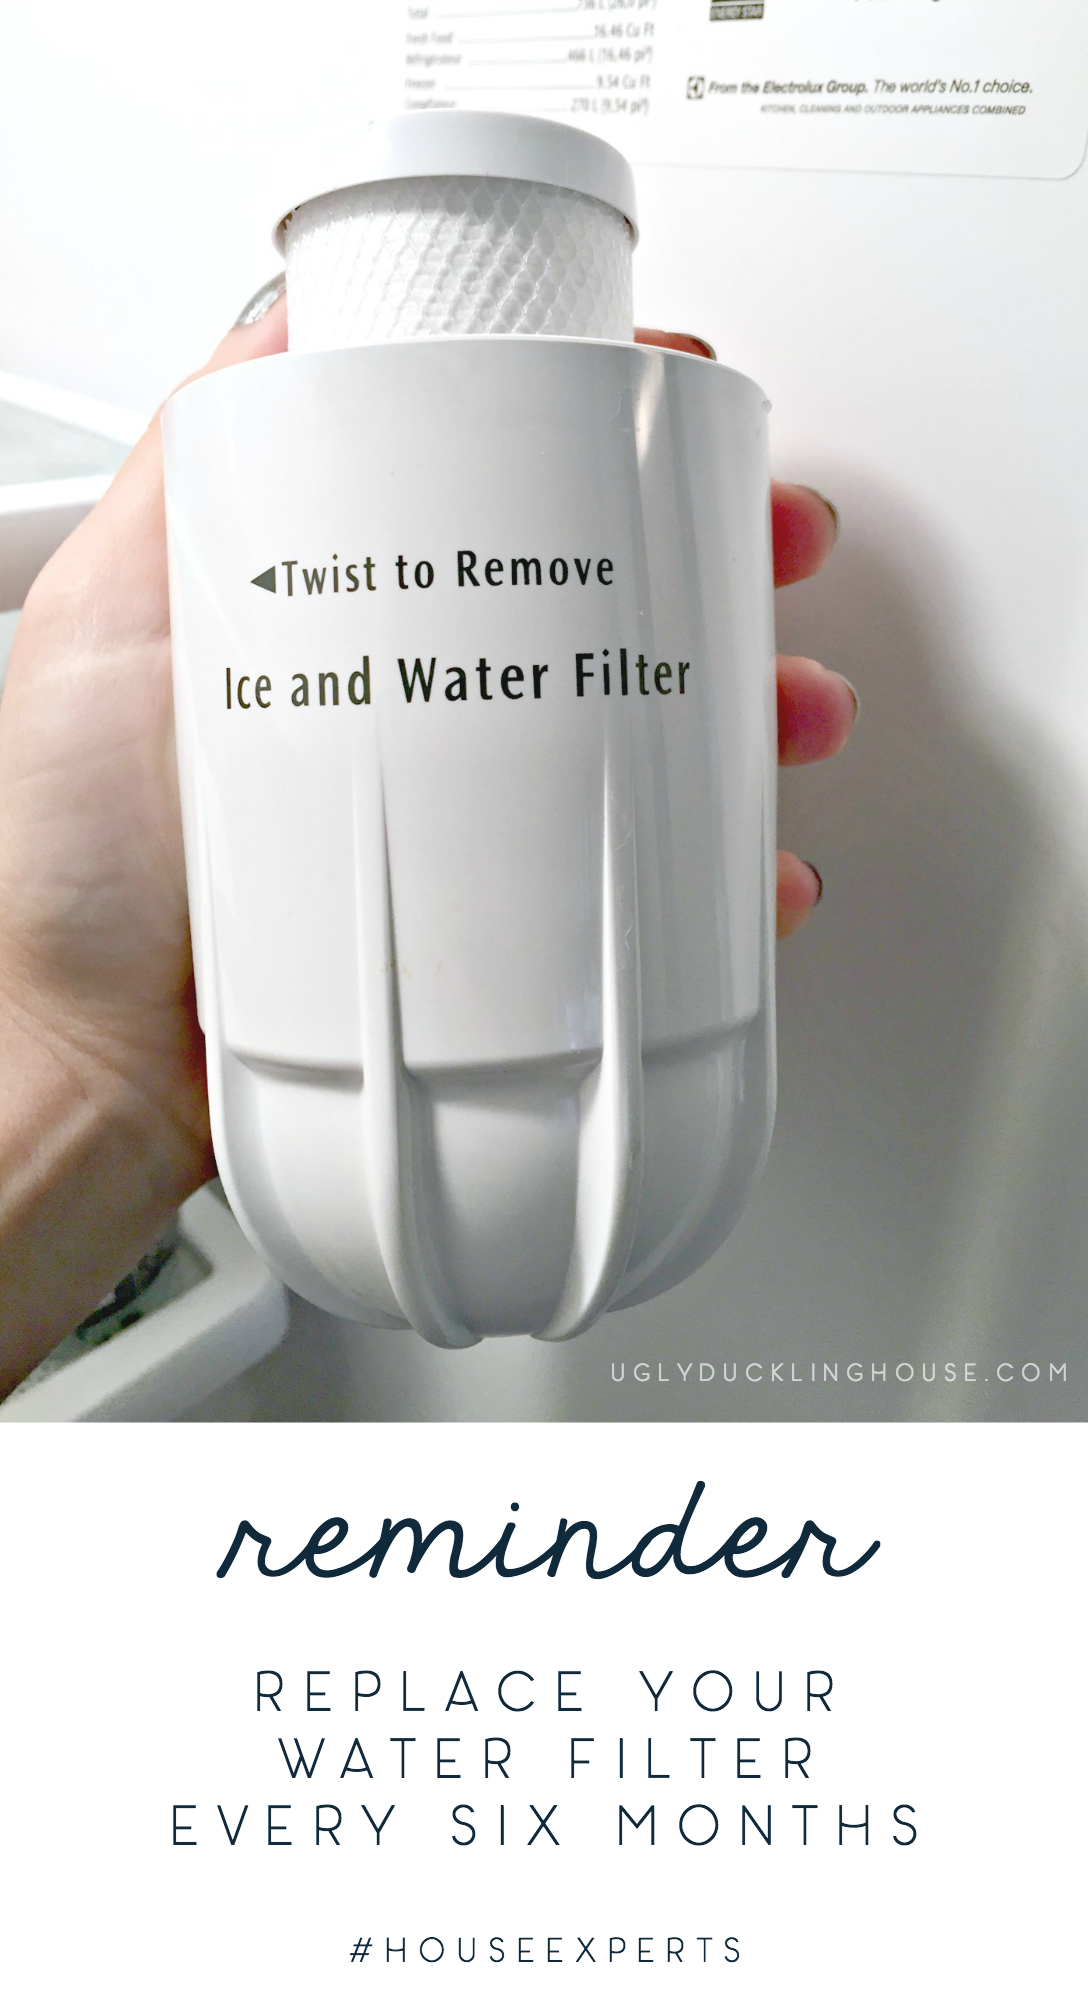 reminder replace water filter every six months